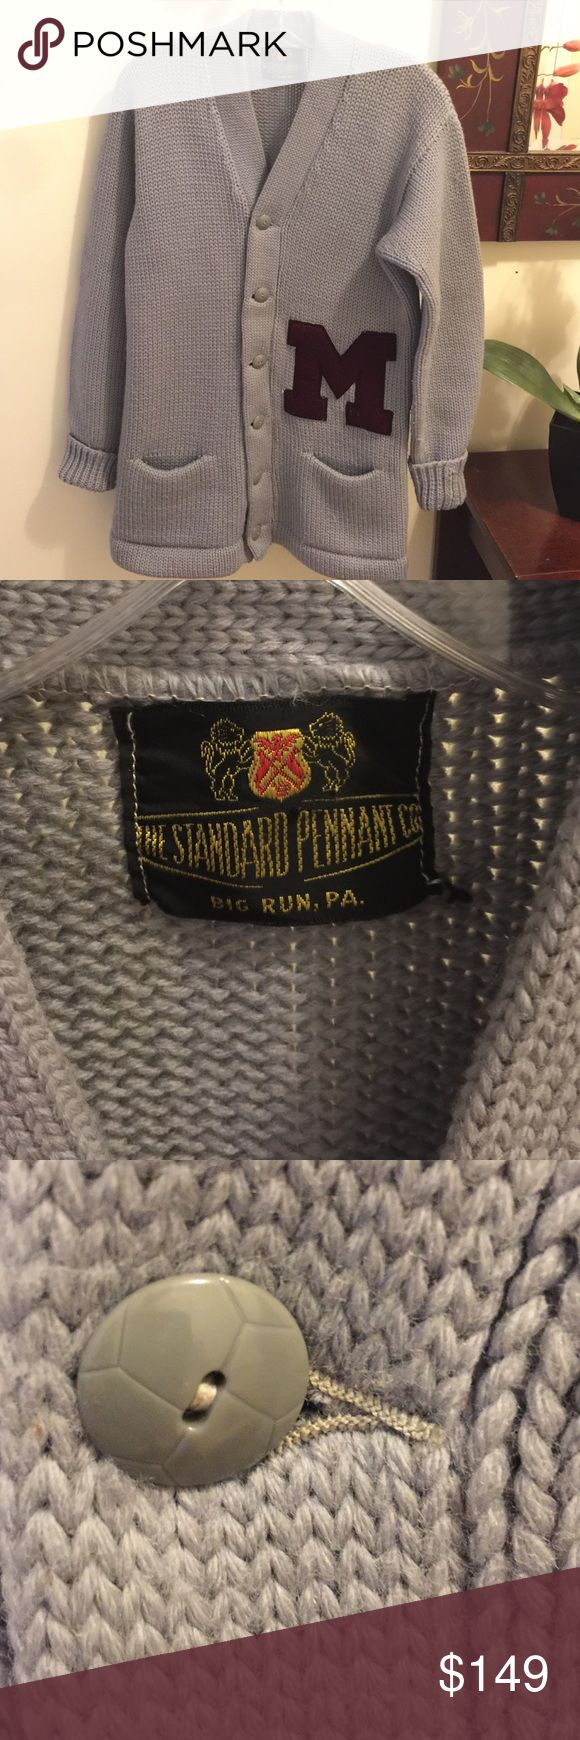 Vintage Thick Weave Letterman Sweater 40's-50's Vintage piece in excellent condition, can we worn with leggings, skinny jeans etc... looks awesome. There is no size  tag but it will fit a size medium top perfectly.  Non smoking house Sweaters Cardigans